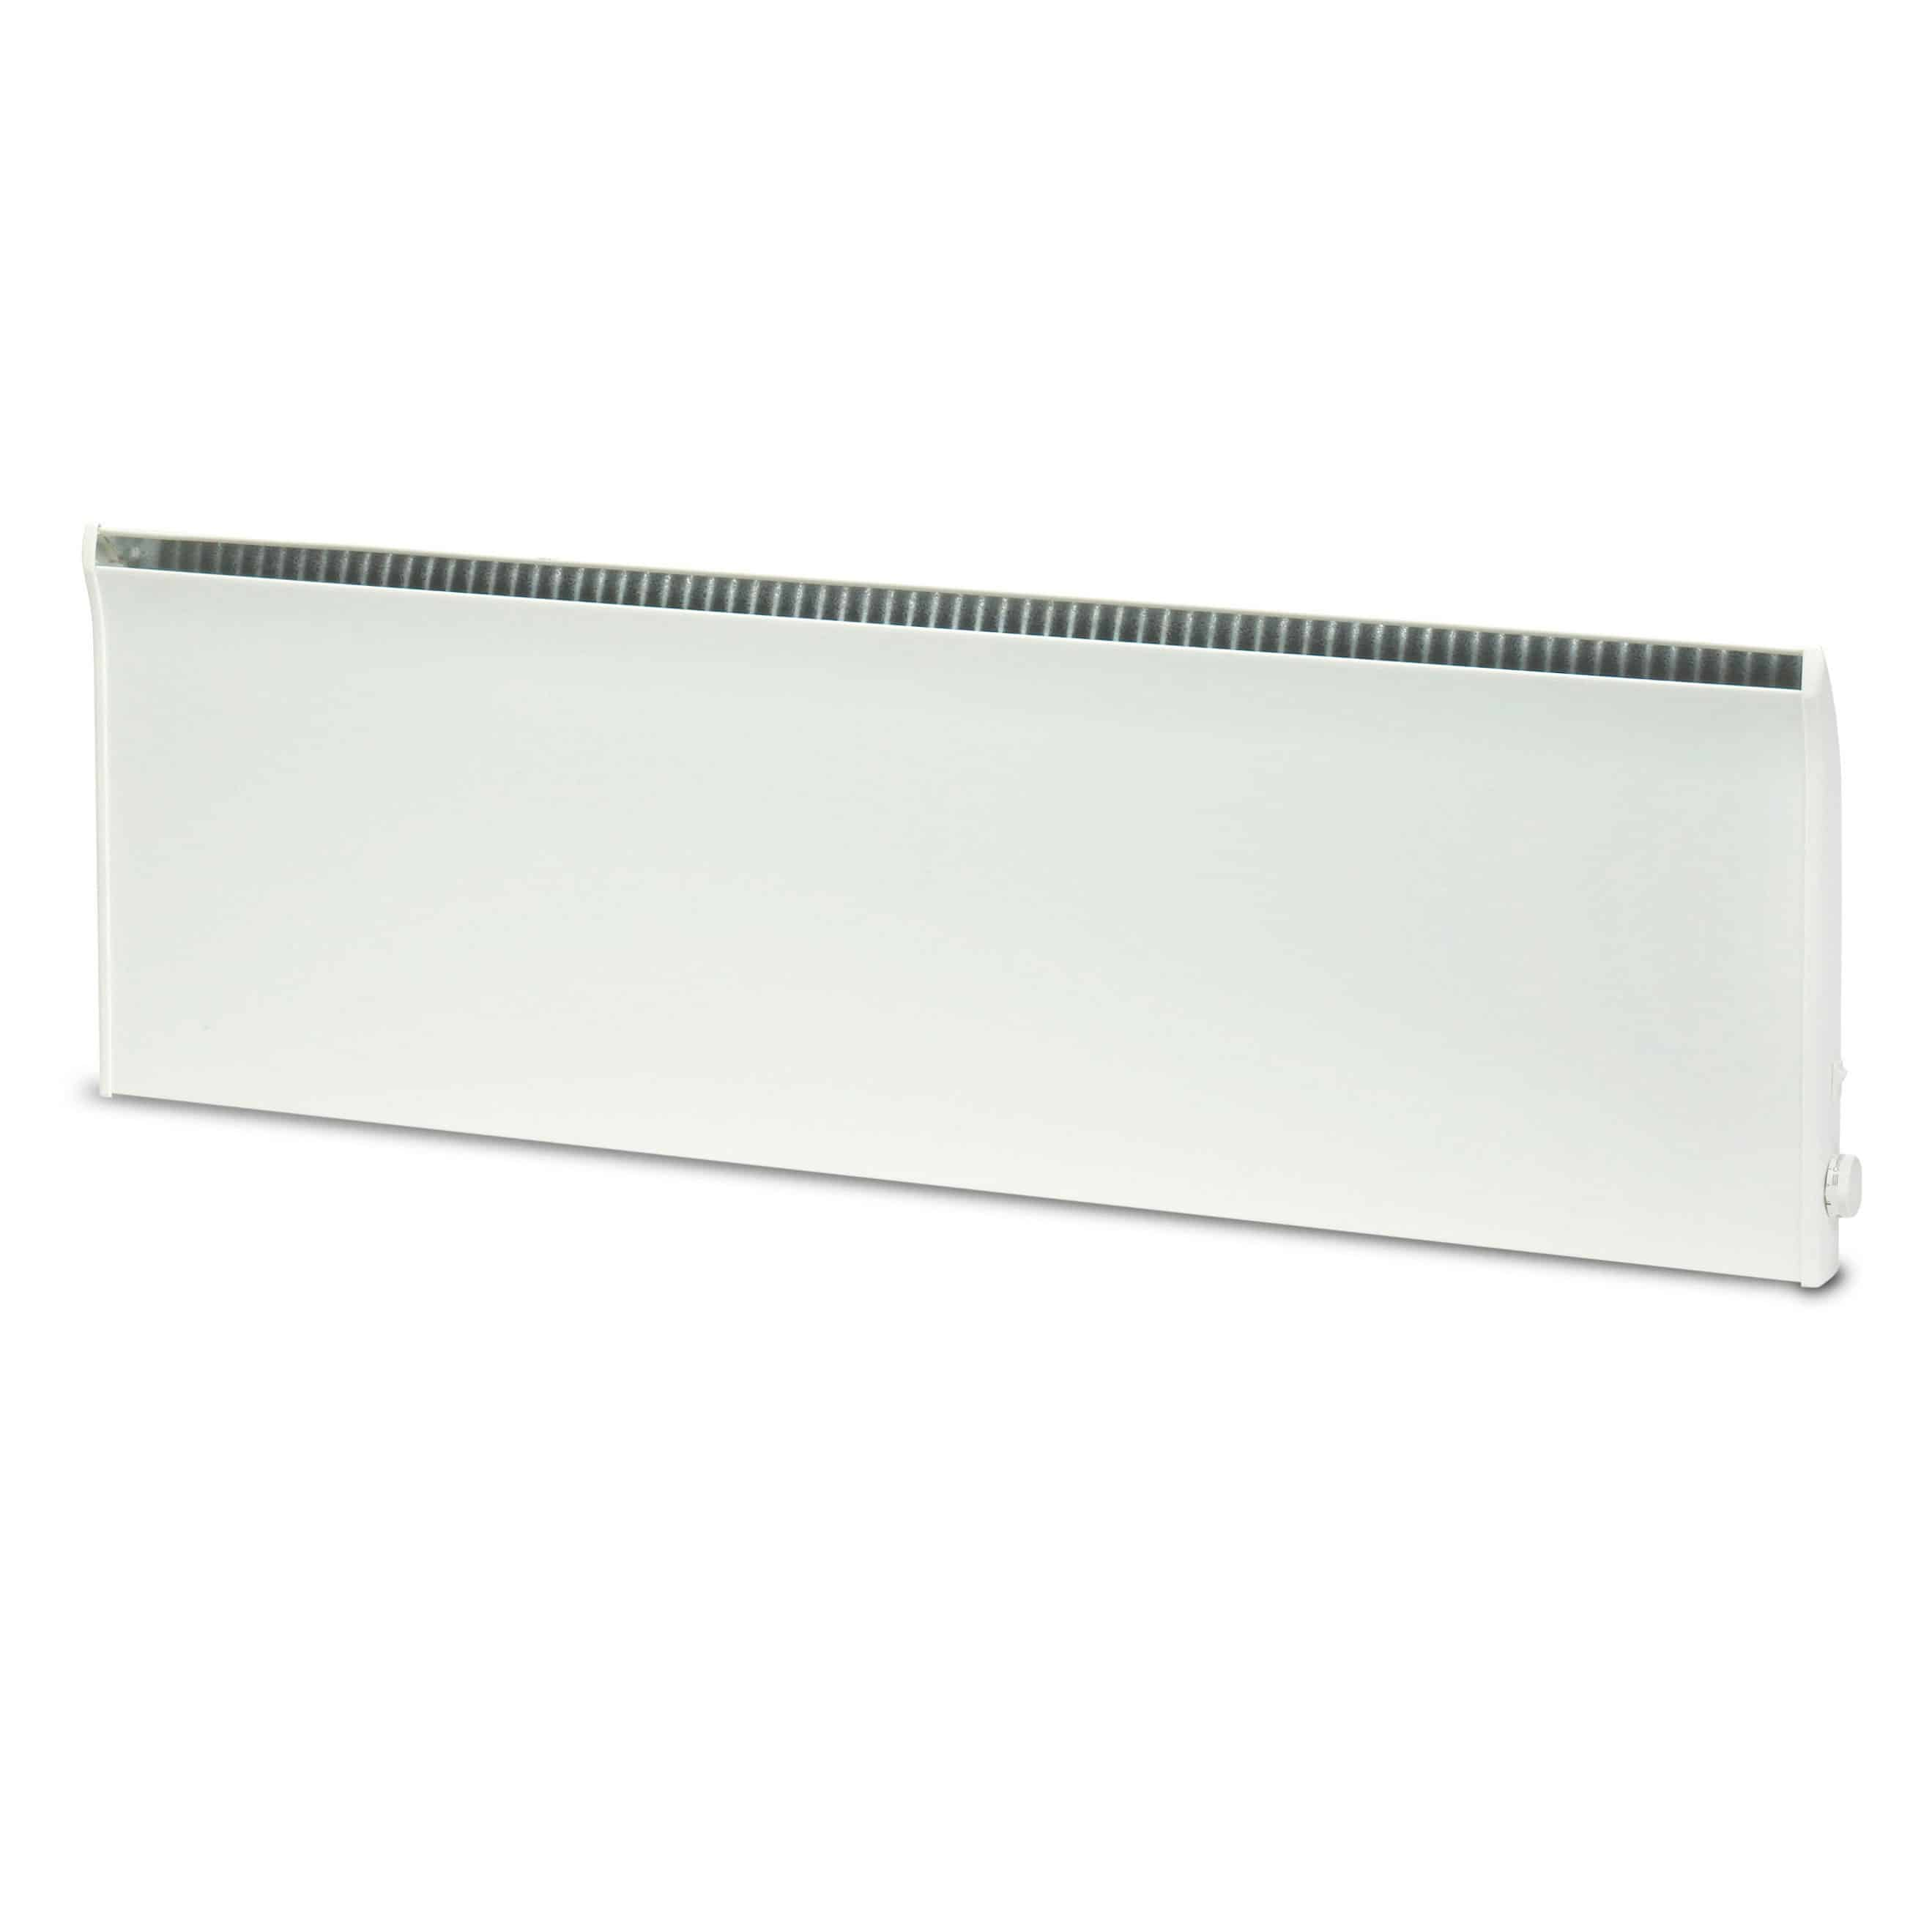 Slimline Electric Heaters Wall Mounted - Norel pm electric panel heater convector radiator wall mounted 1 pm12